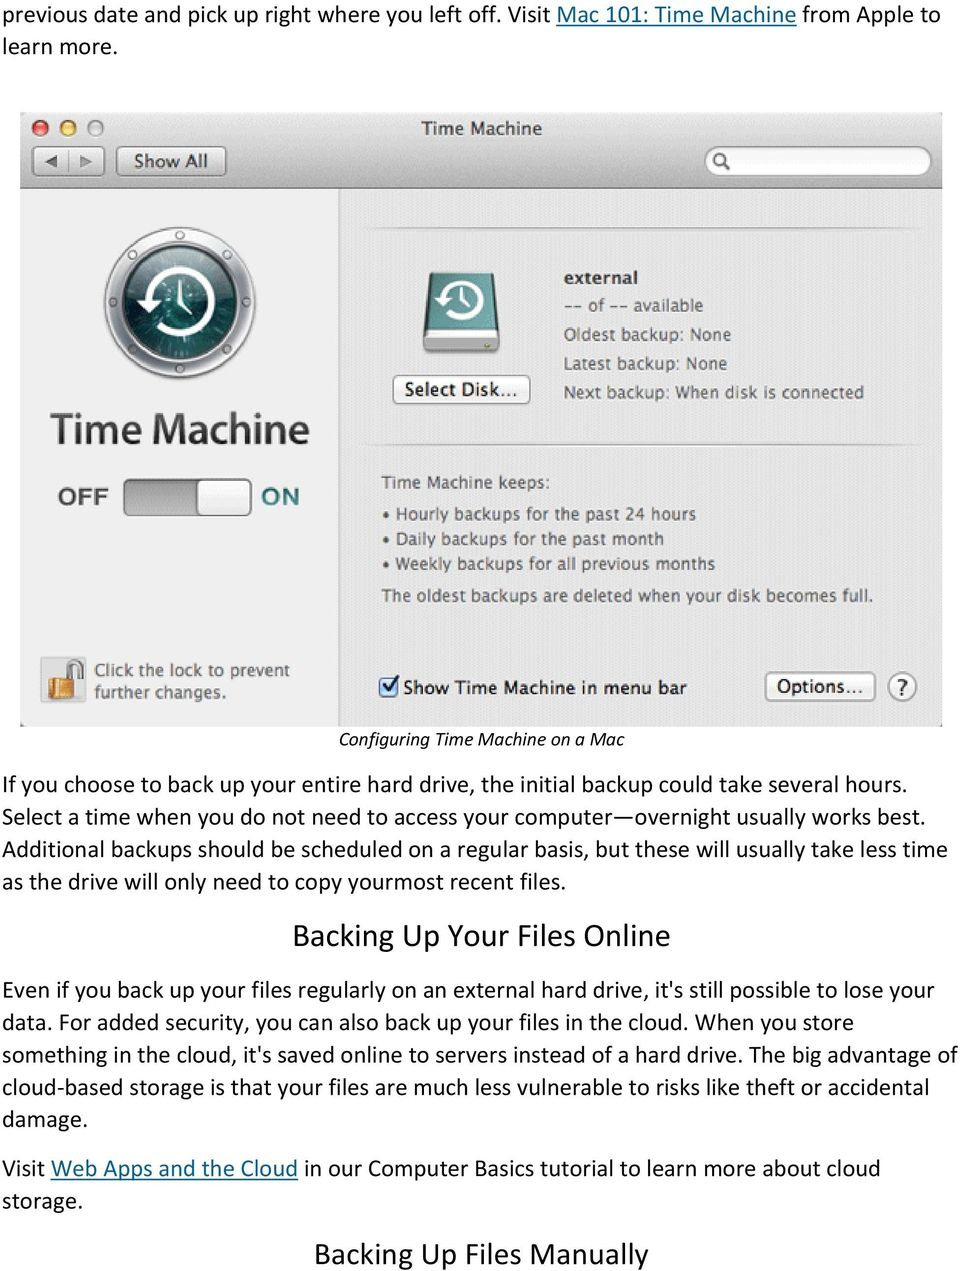 Select a time when you do not need to access your computer overnight usually works best.